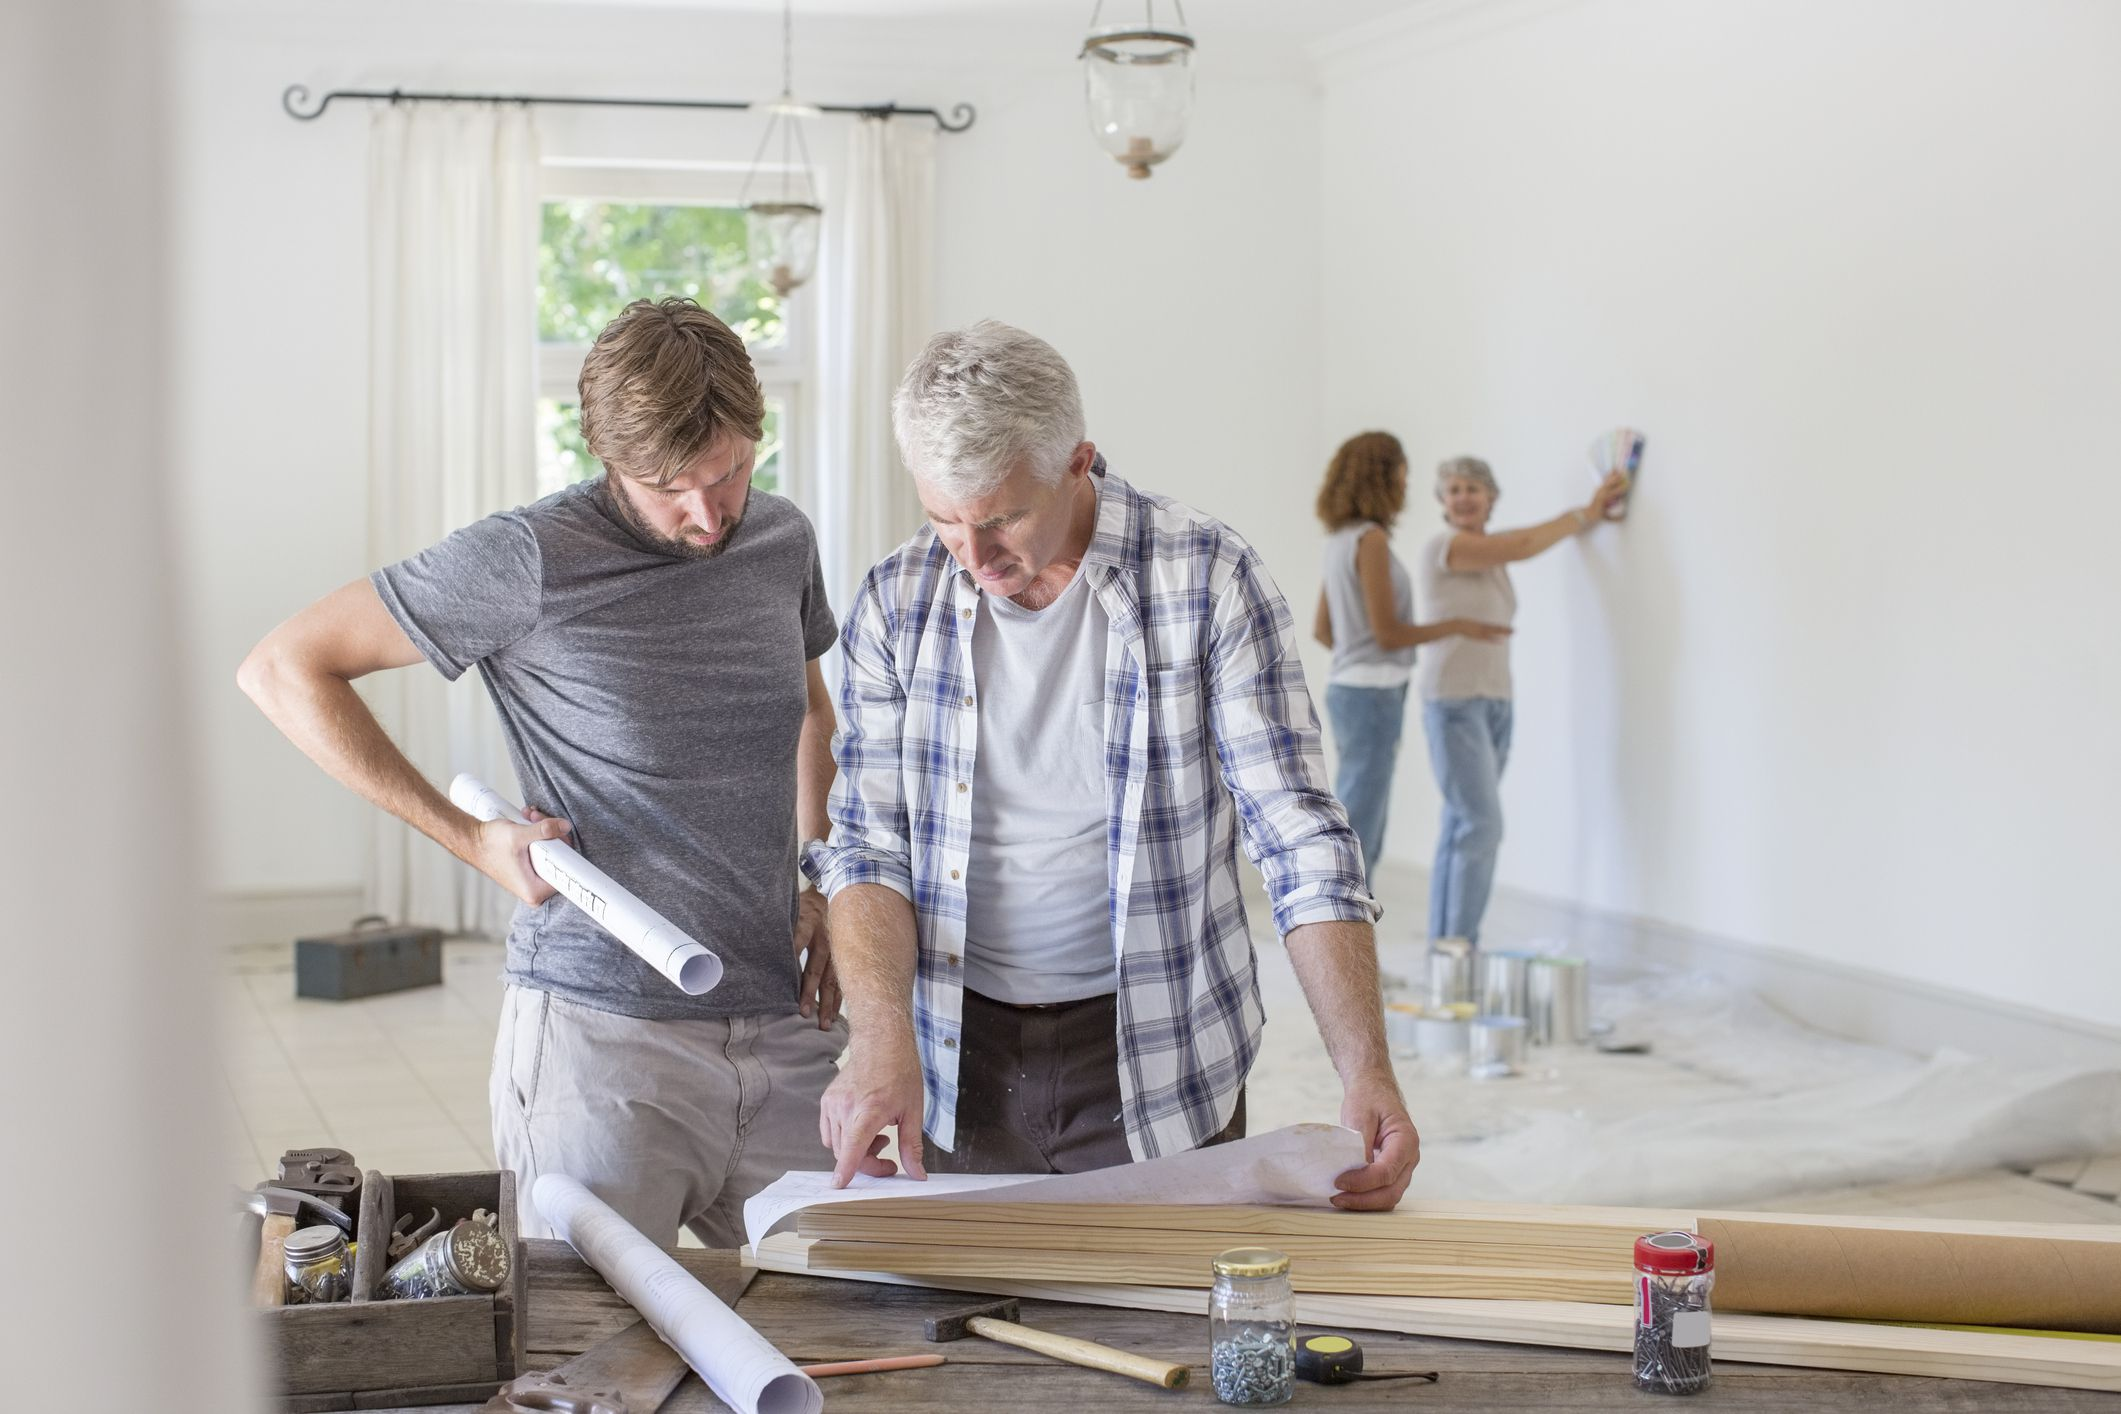 4 Things to Consider When Planning Home Renovations